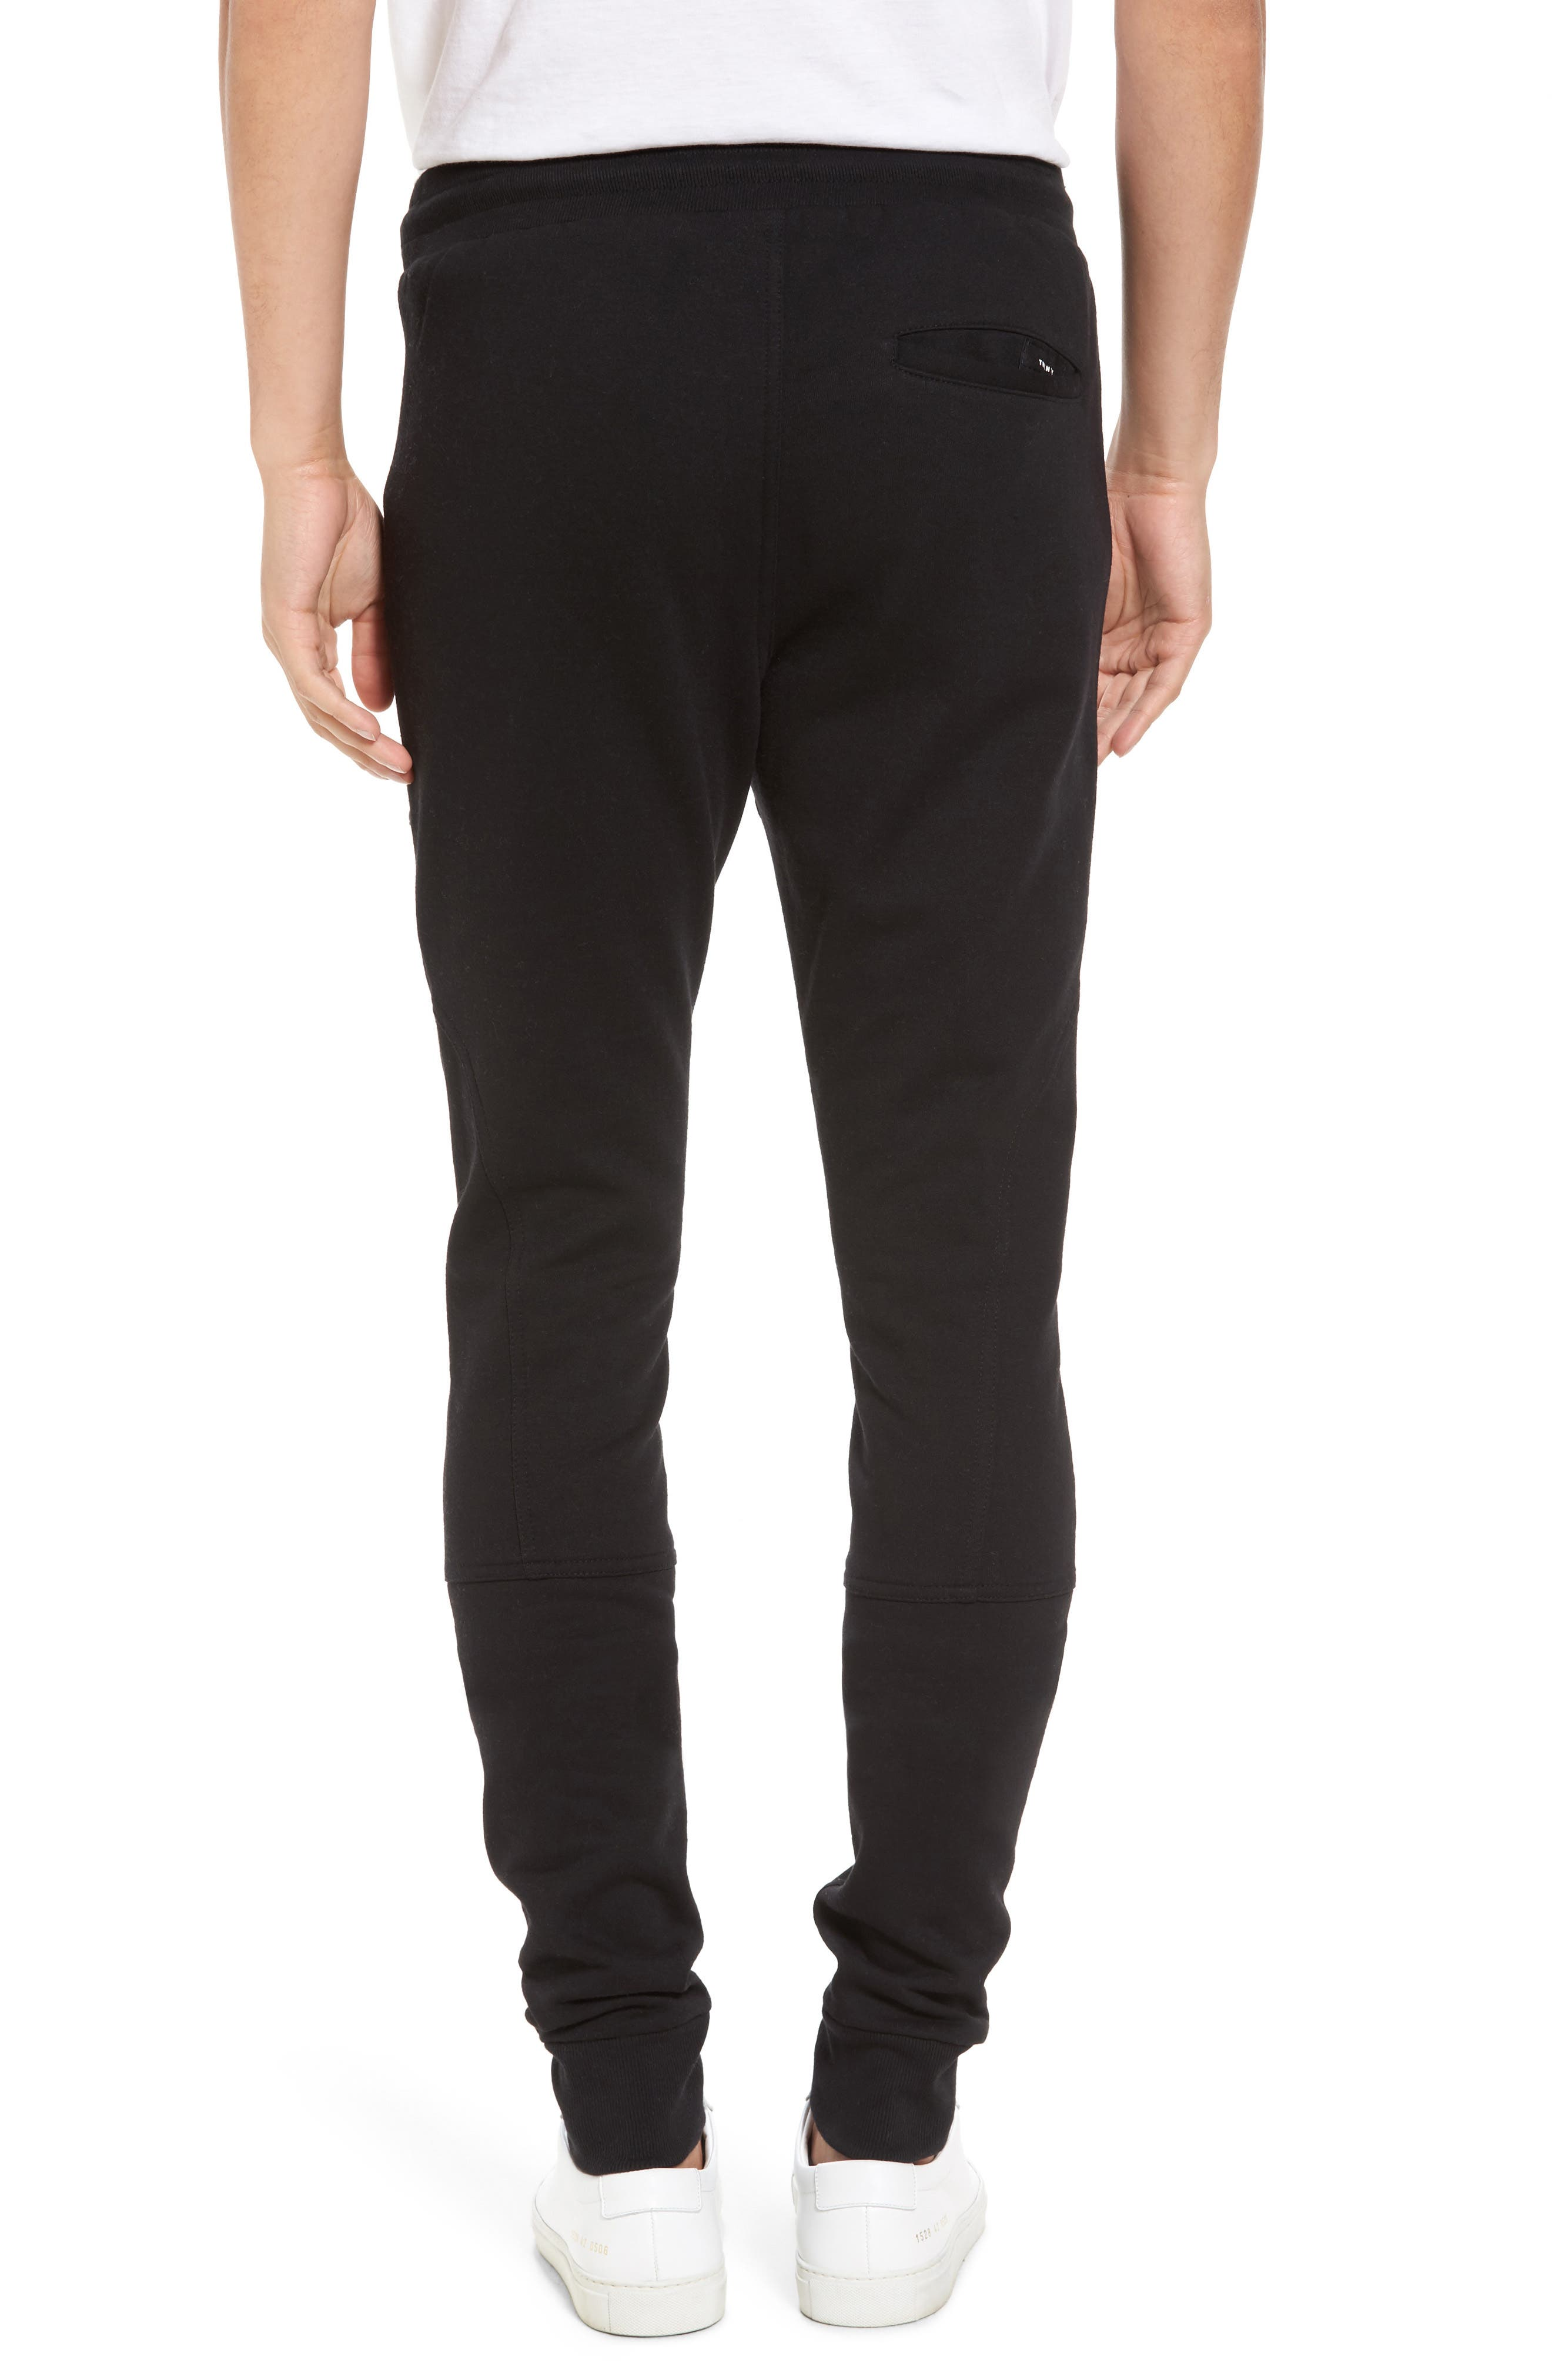 French Terry Sweatpants,                             Alternate thumbnail 2, color,                             001